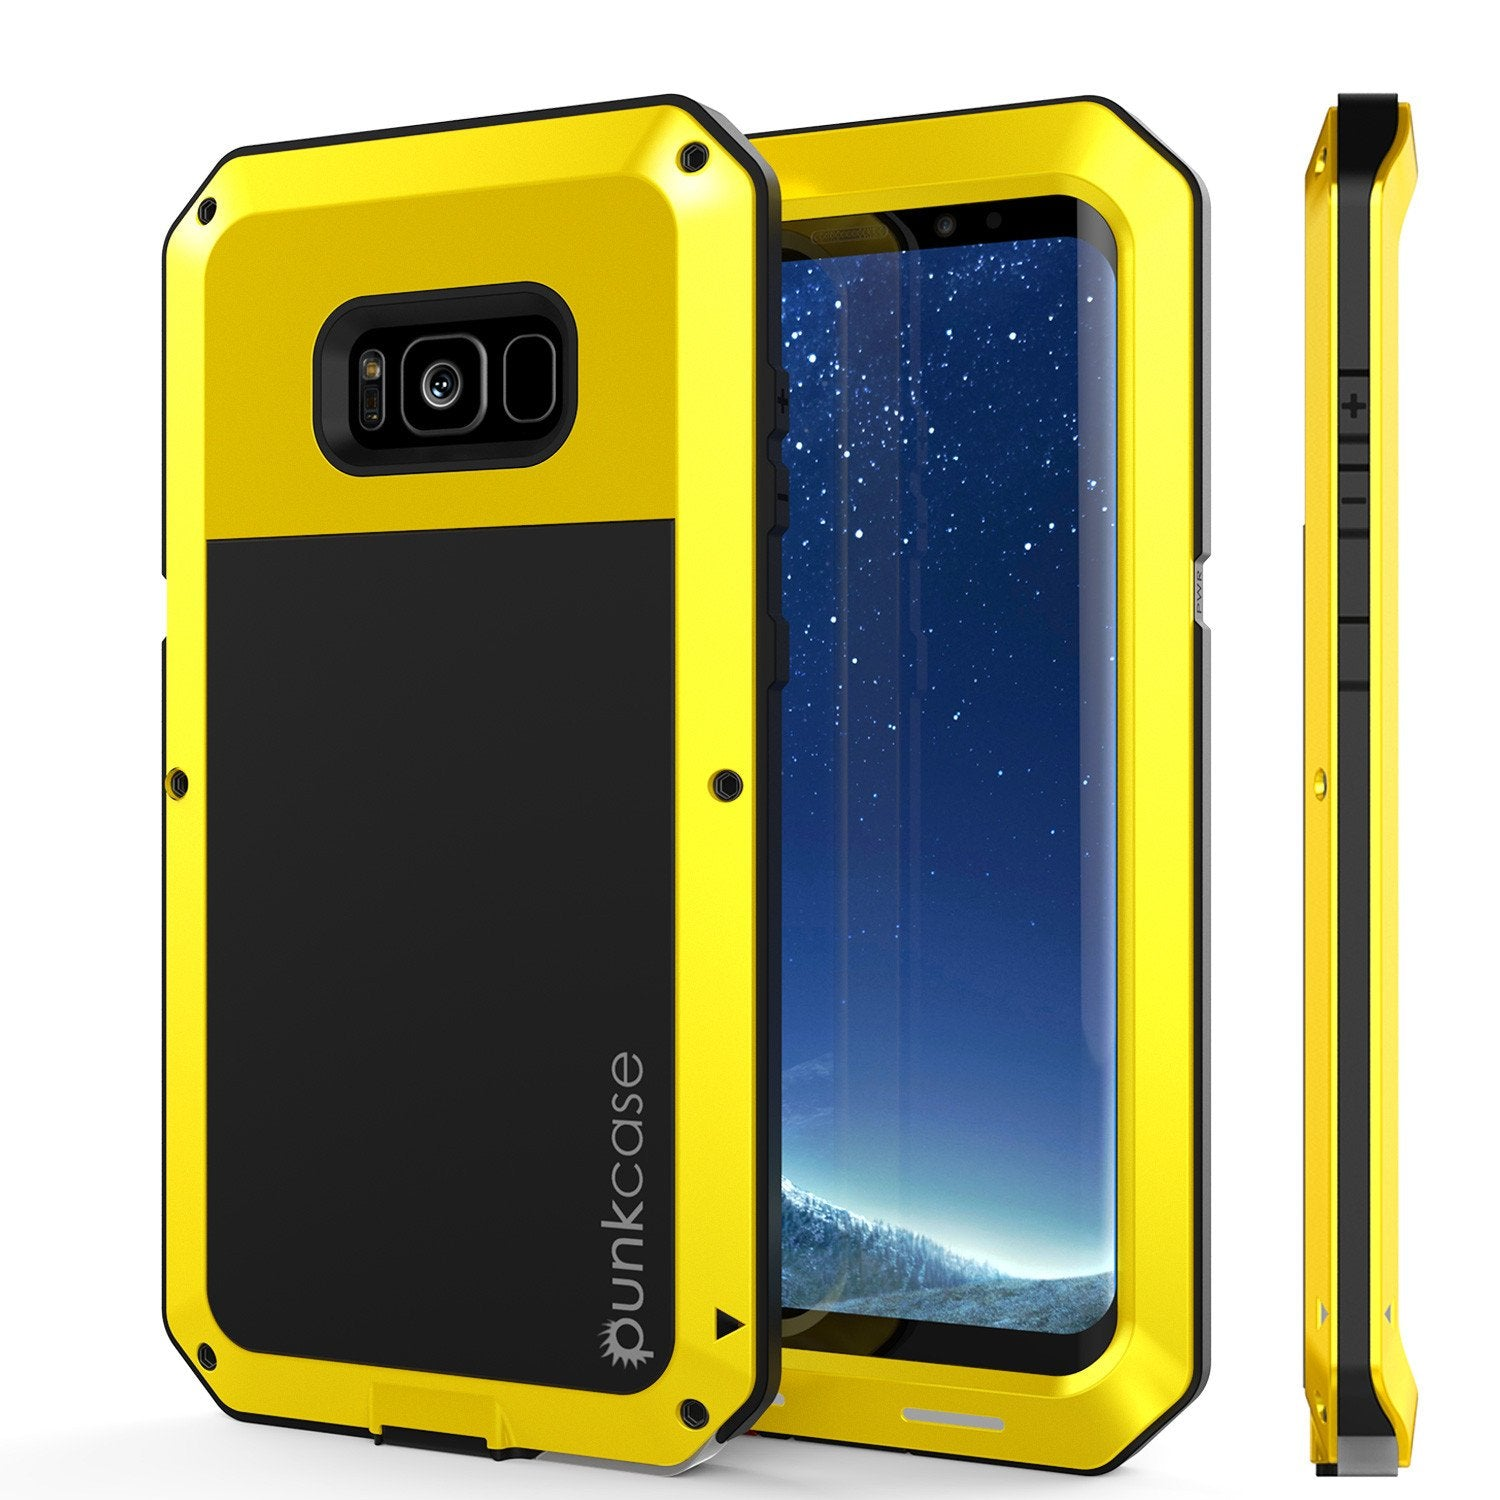 Galaxy S8+ Plus Metal Case, Heavy Duty Military Grade Rugged Armor Cover [shock proof] W/ Prime Drop Protection [NEON]